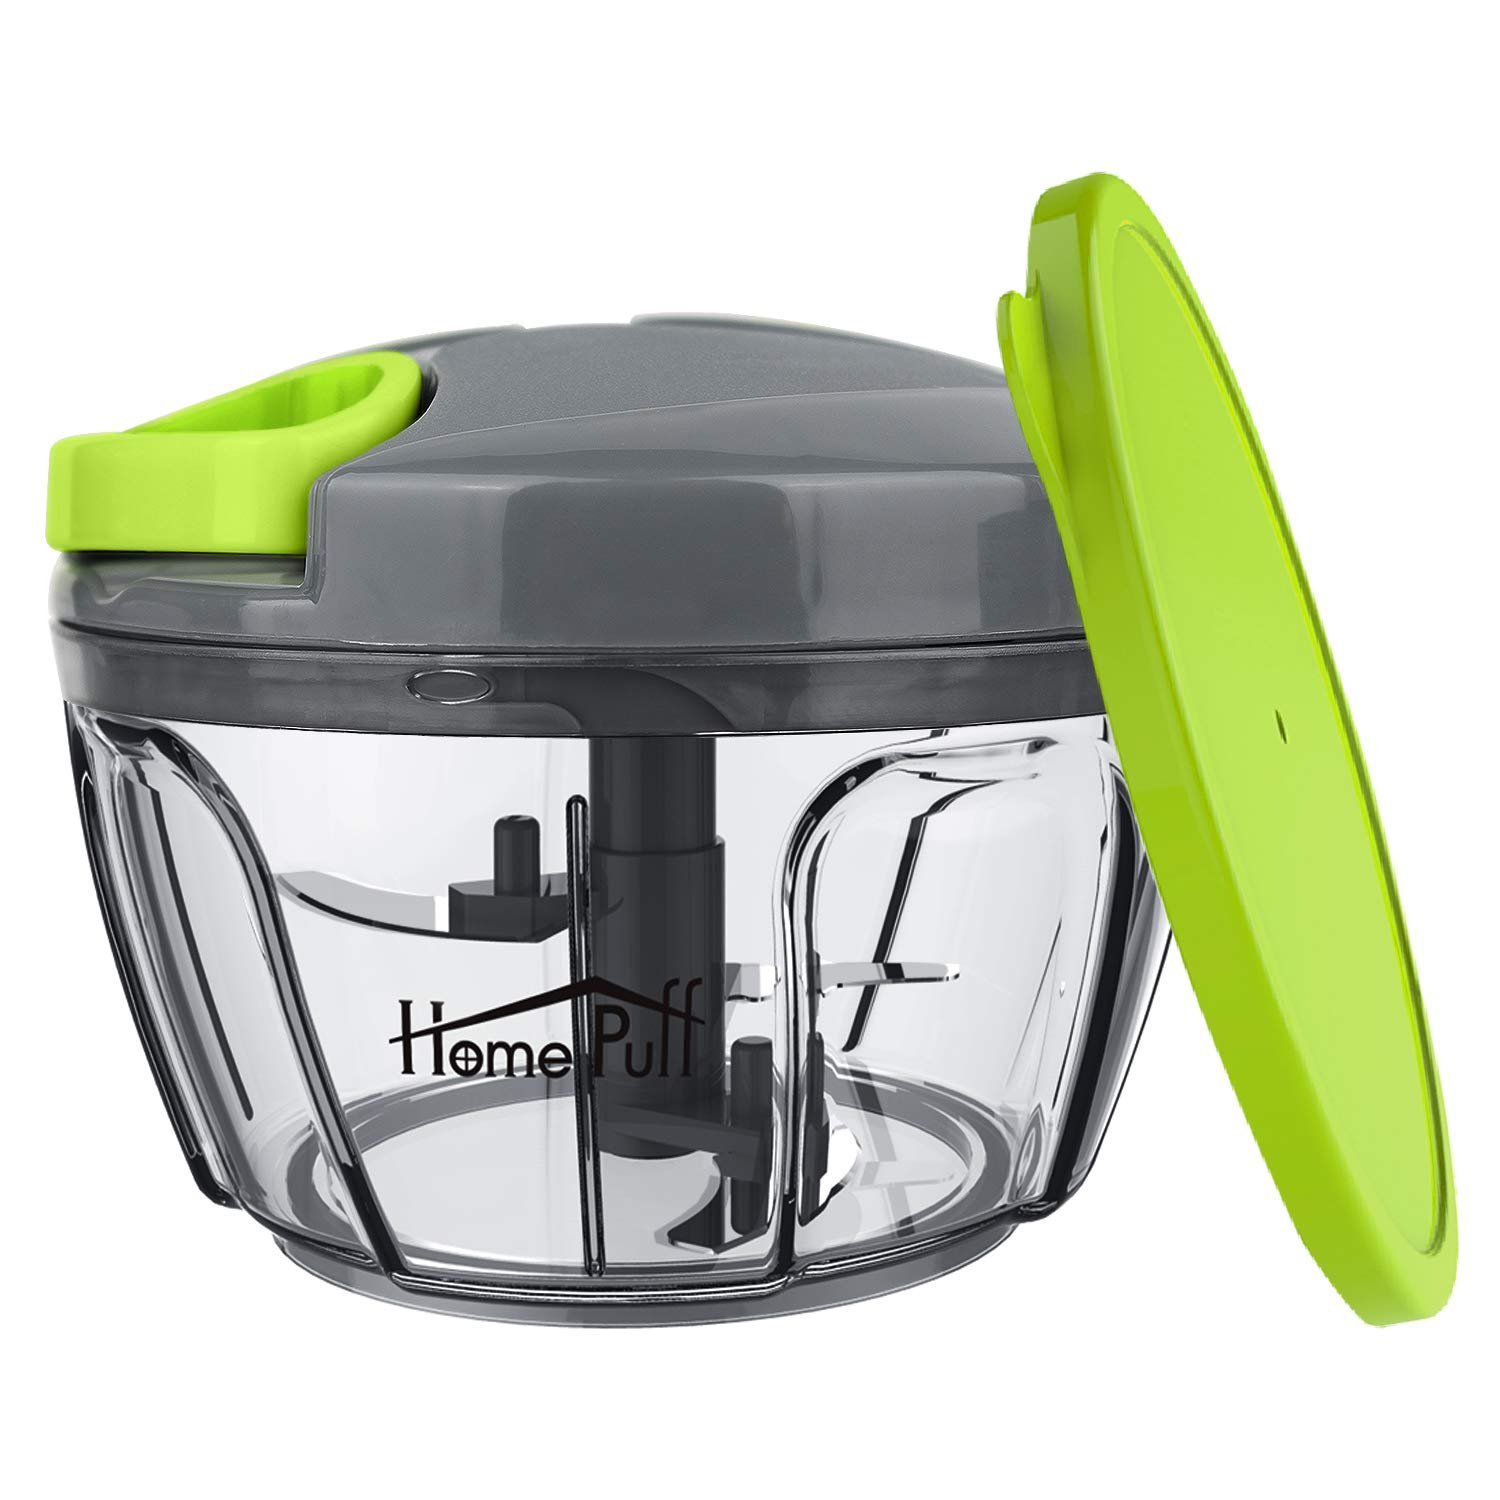 Home Puff Plastic 3 Blade Vegetable Chopper and Cutter with Storage Lid, 400 ml product image